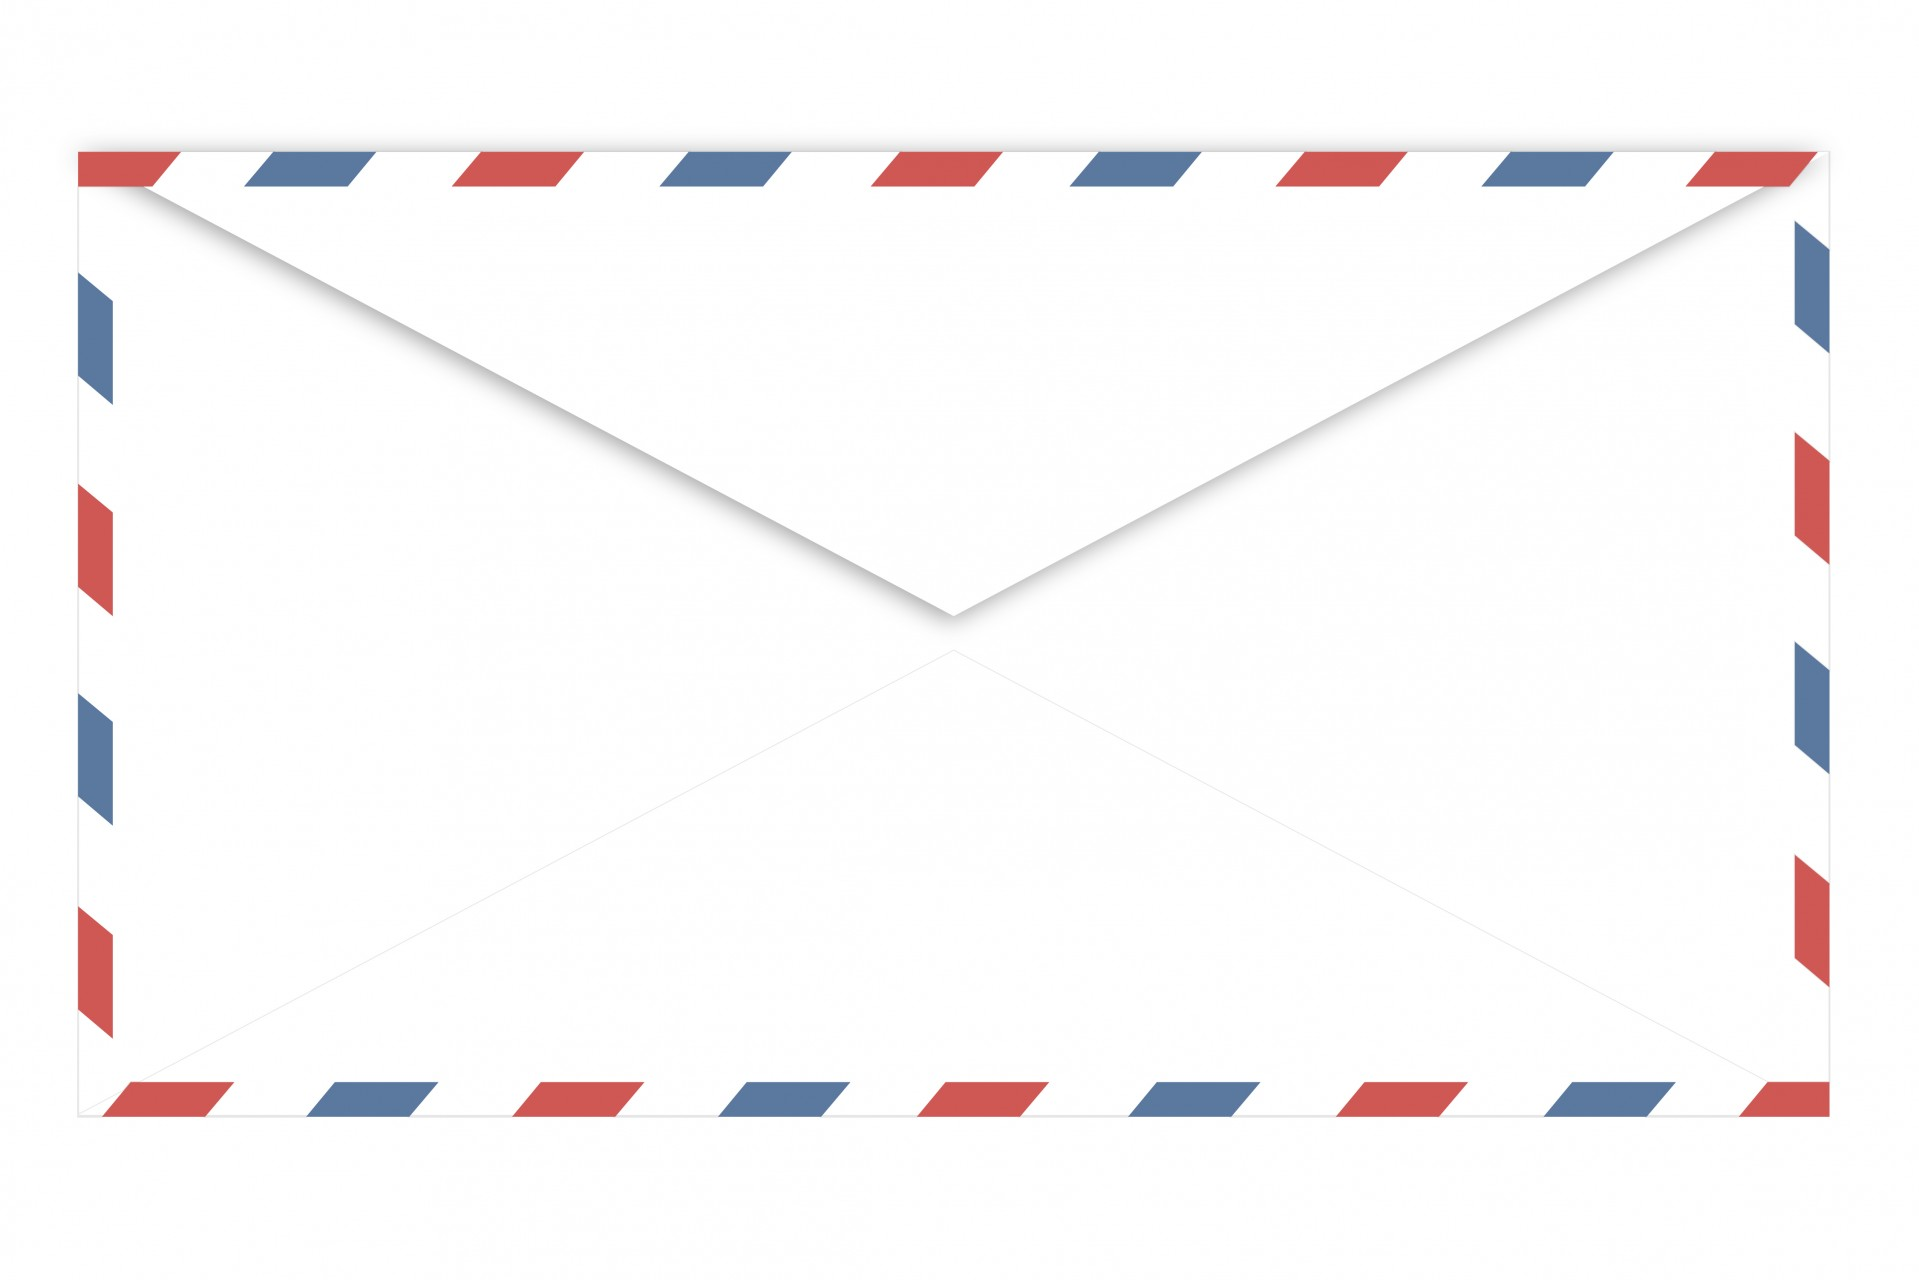 Airmail Envelope Clipart Free Stock Photo.